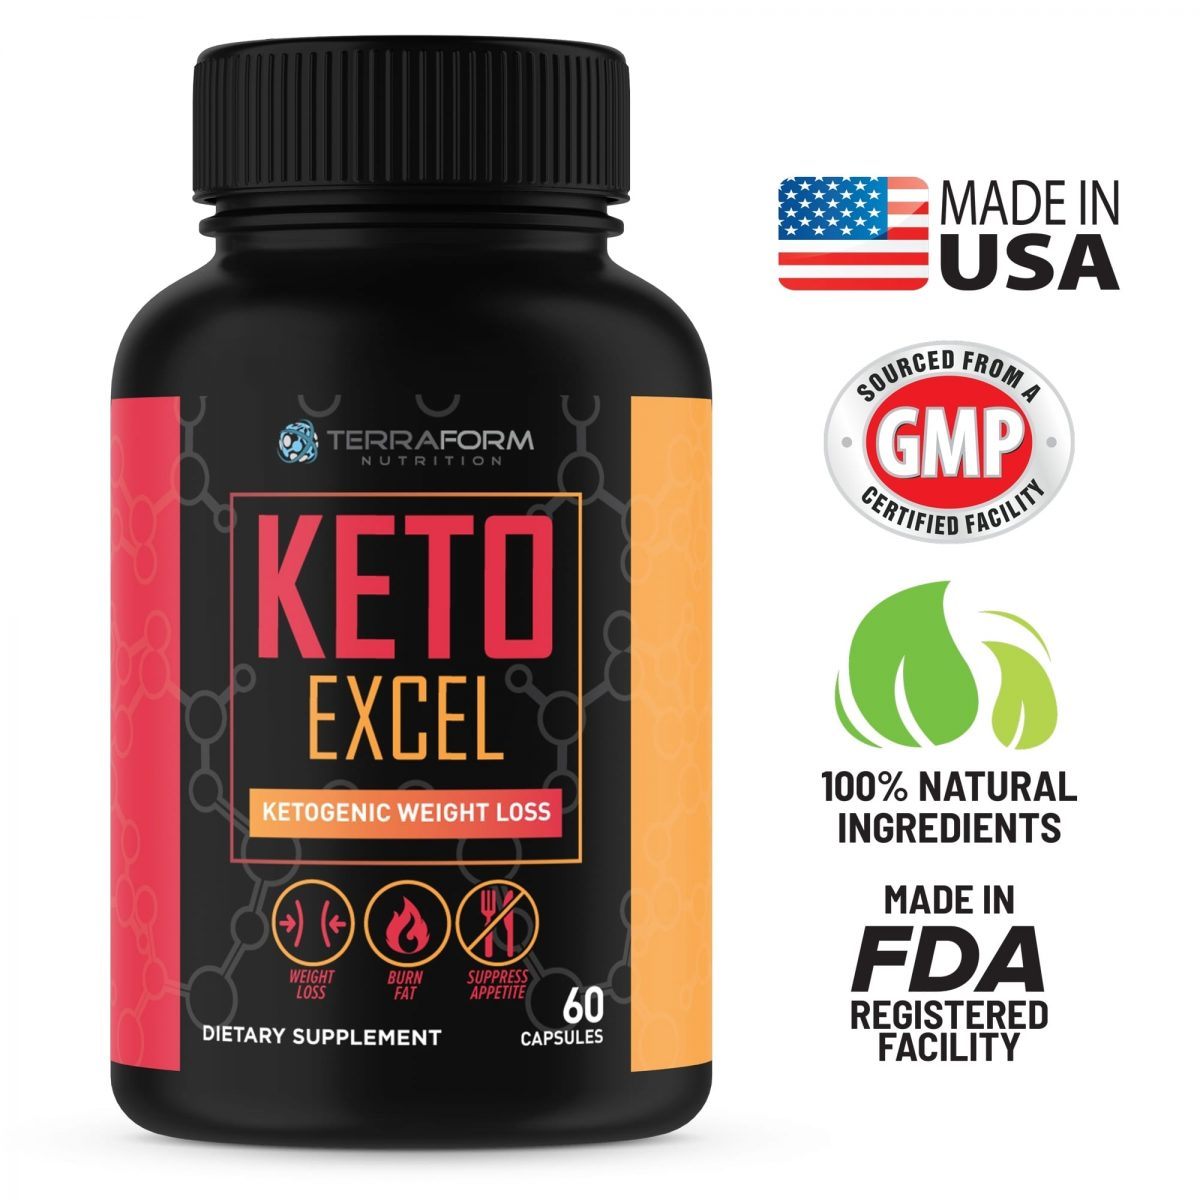 Premium Keto Stack - Keto Excel Weight Loss & Keto Ready Carb Blocker - 30 Day Supply-748